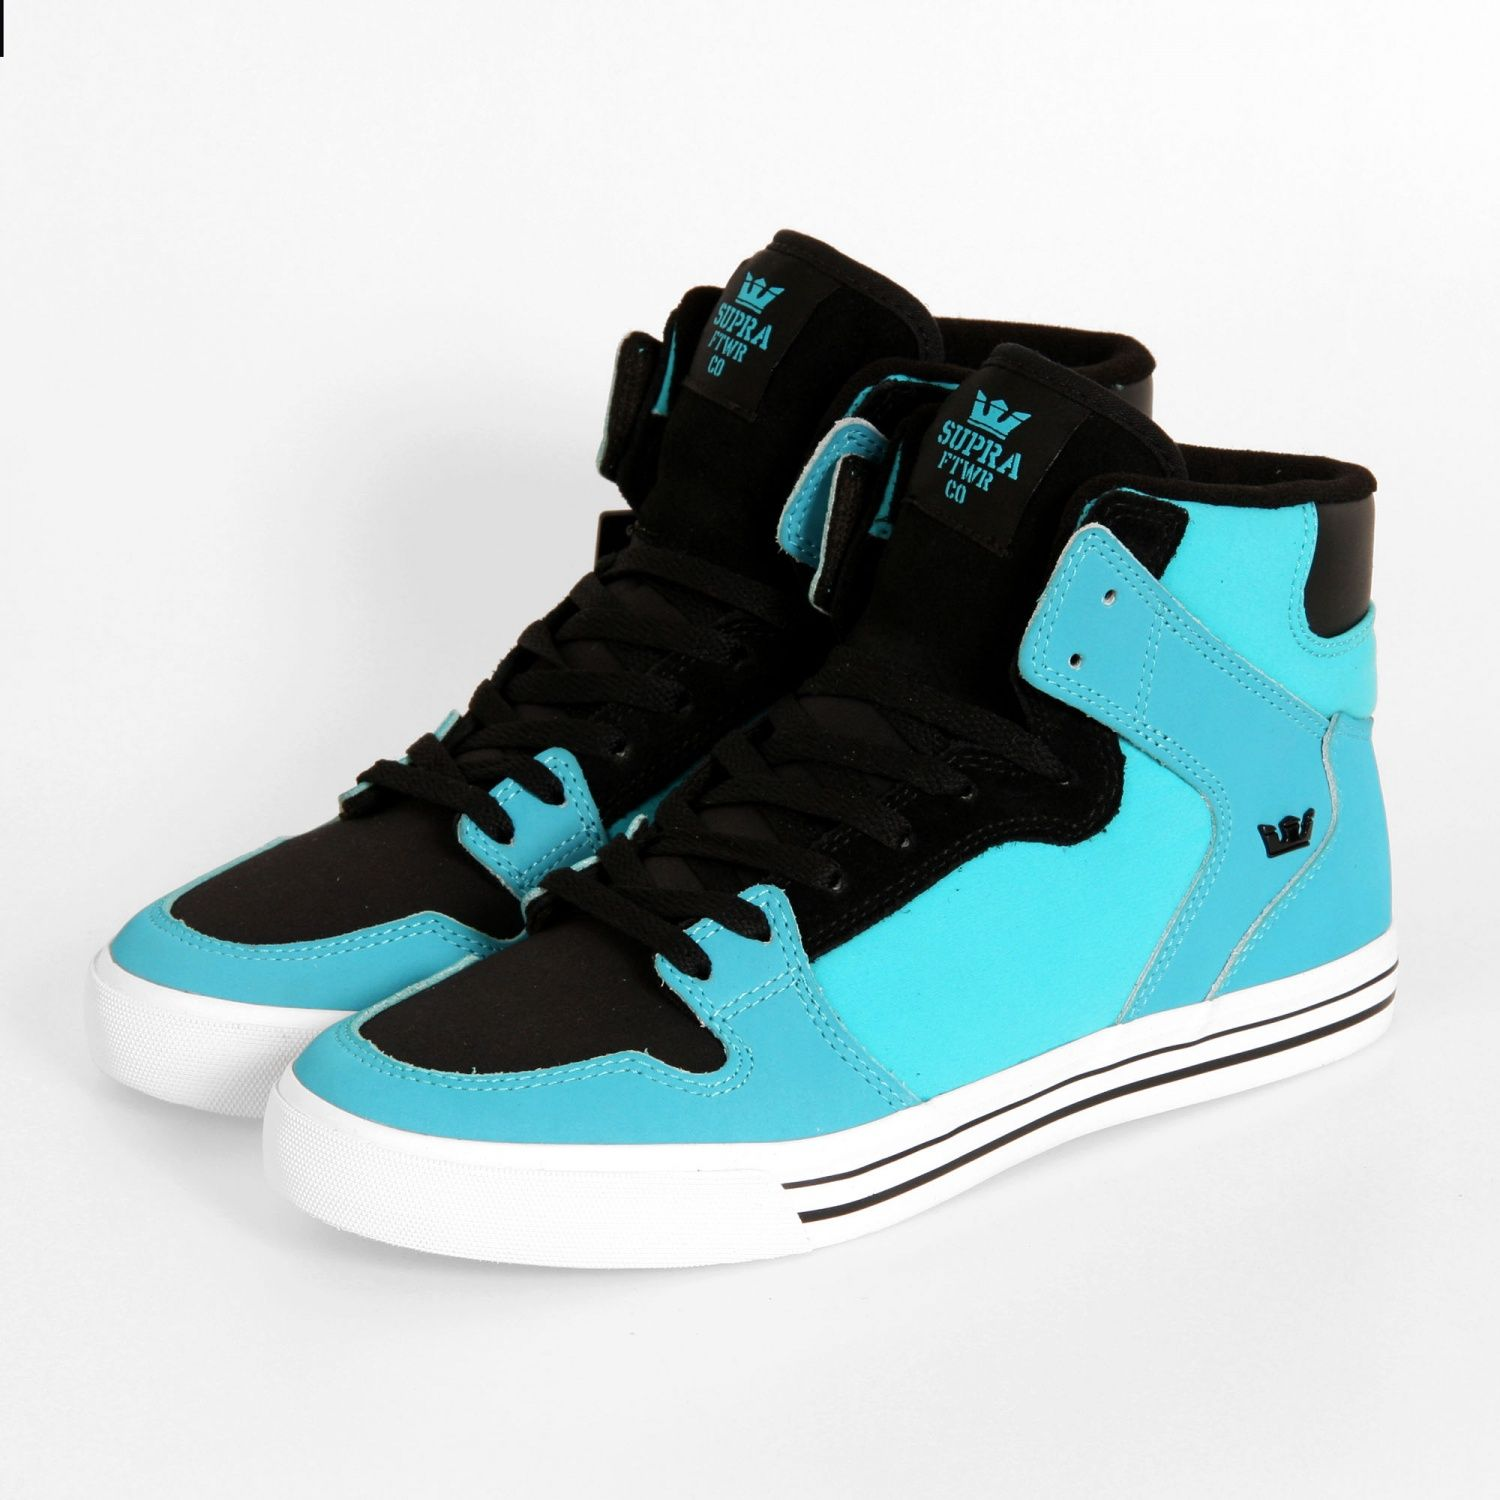 new product 434ac 73ade Supra Shoes - Vaider (Blue Black White)   shoes   high tops   women s shoes